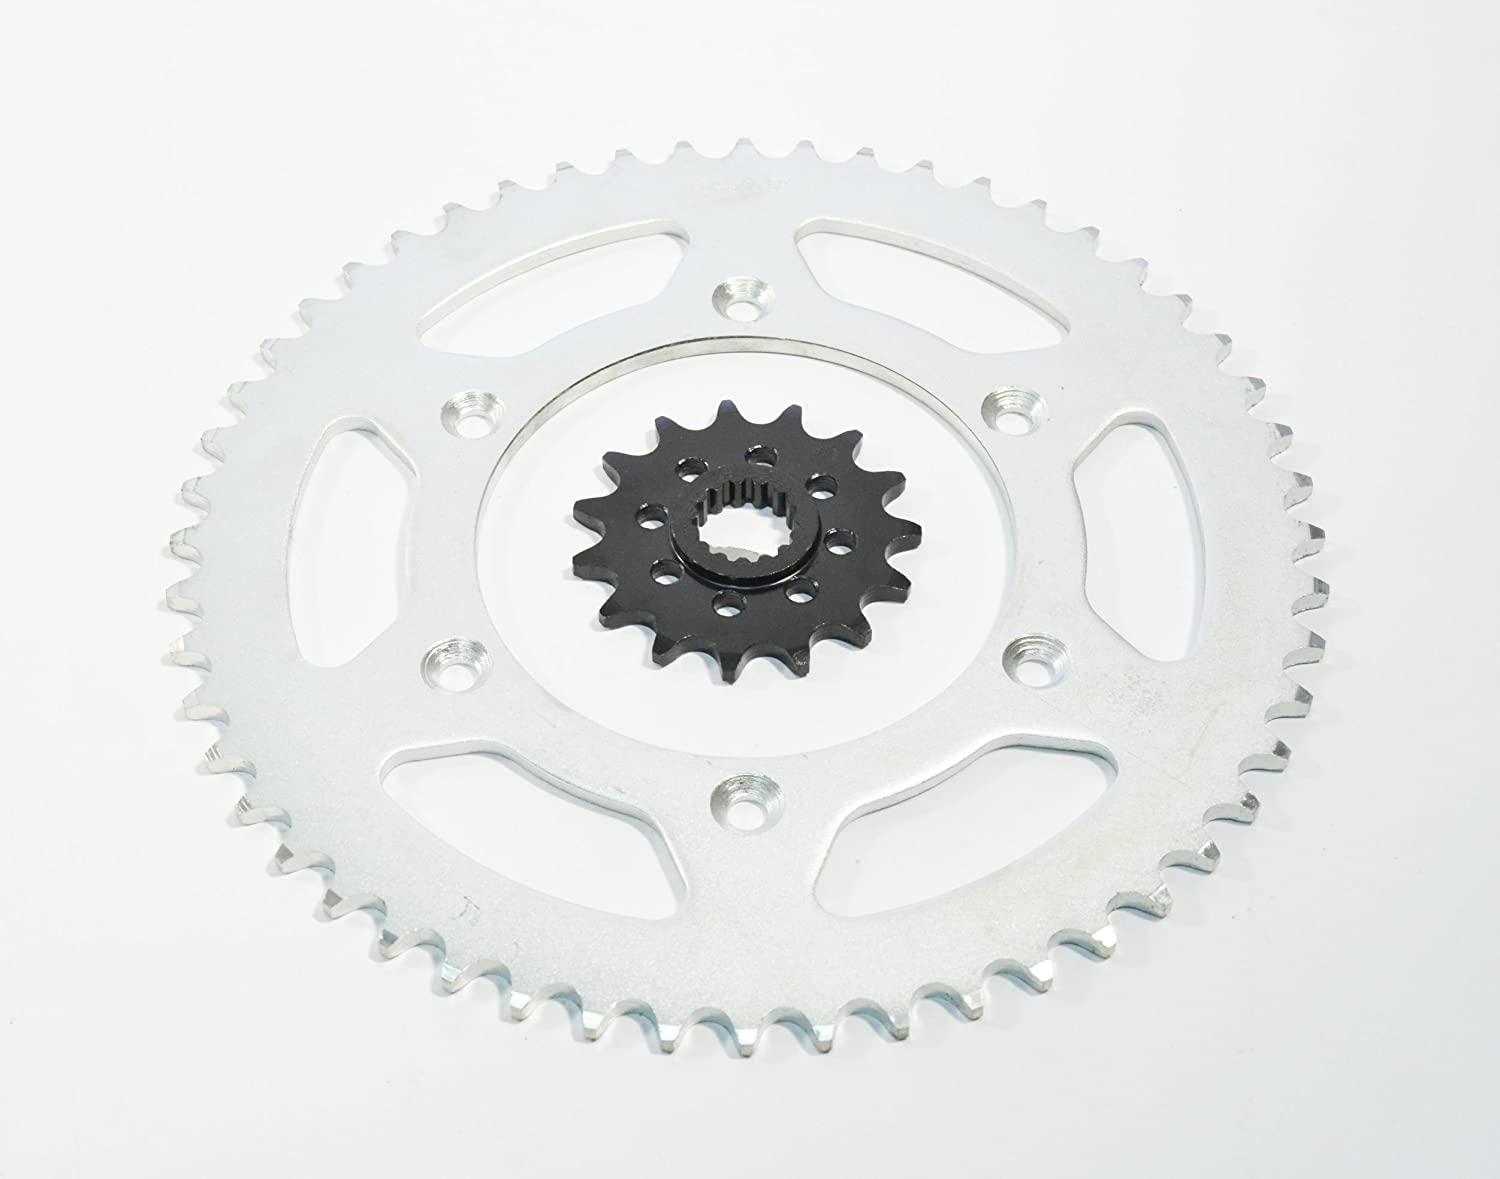 1991 1992 1993 1994 1995 1996 fits KTM 250 SX 15 Tooth Front & 52 Tooth Rear Sprocket